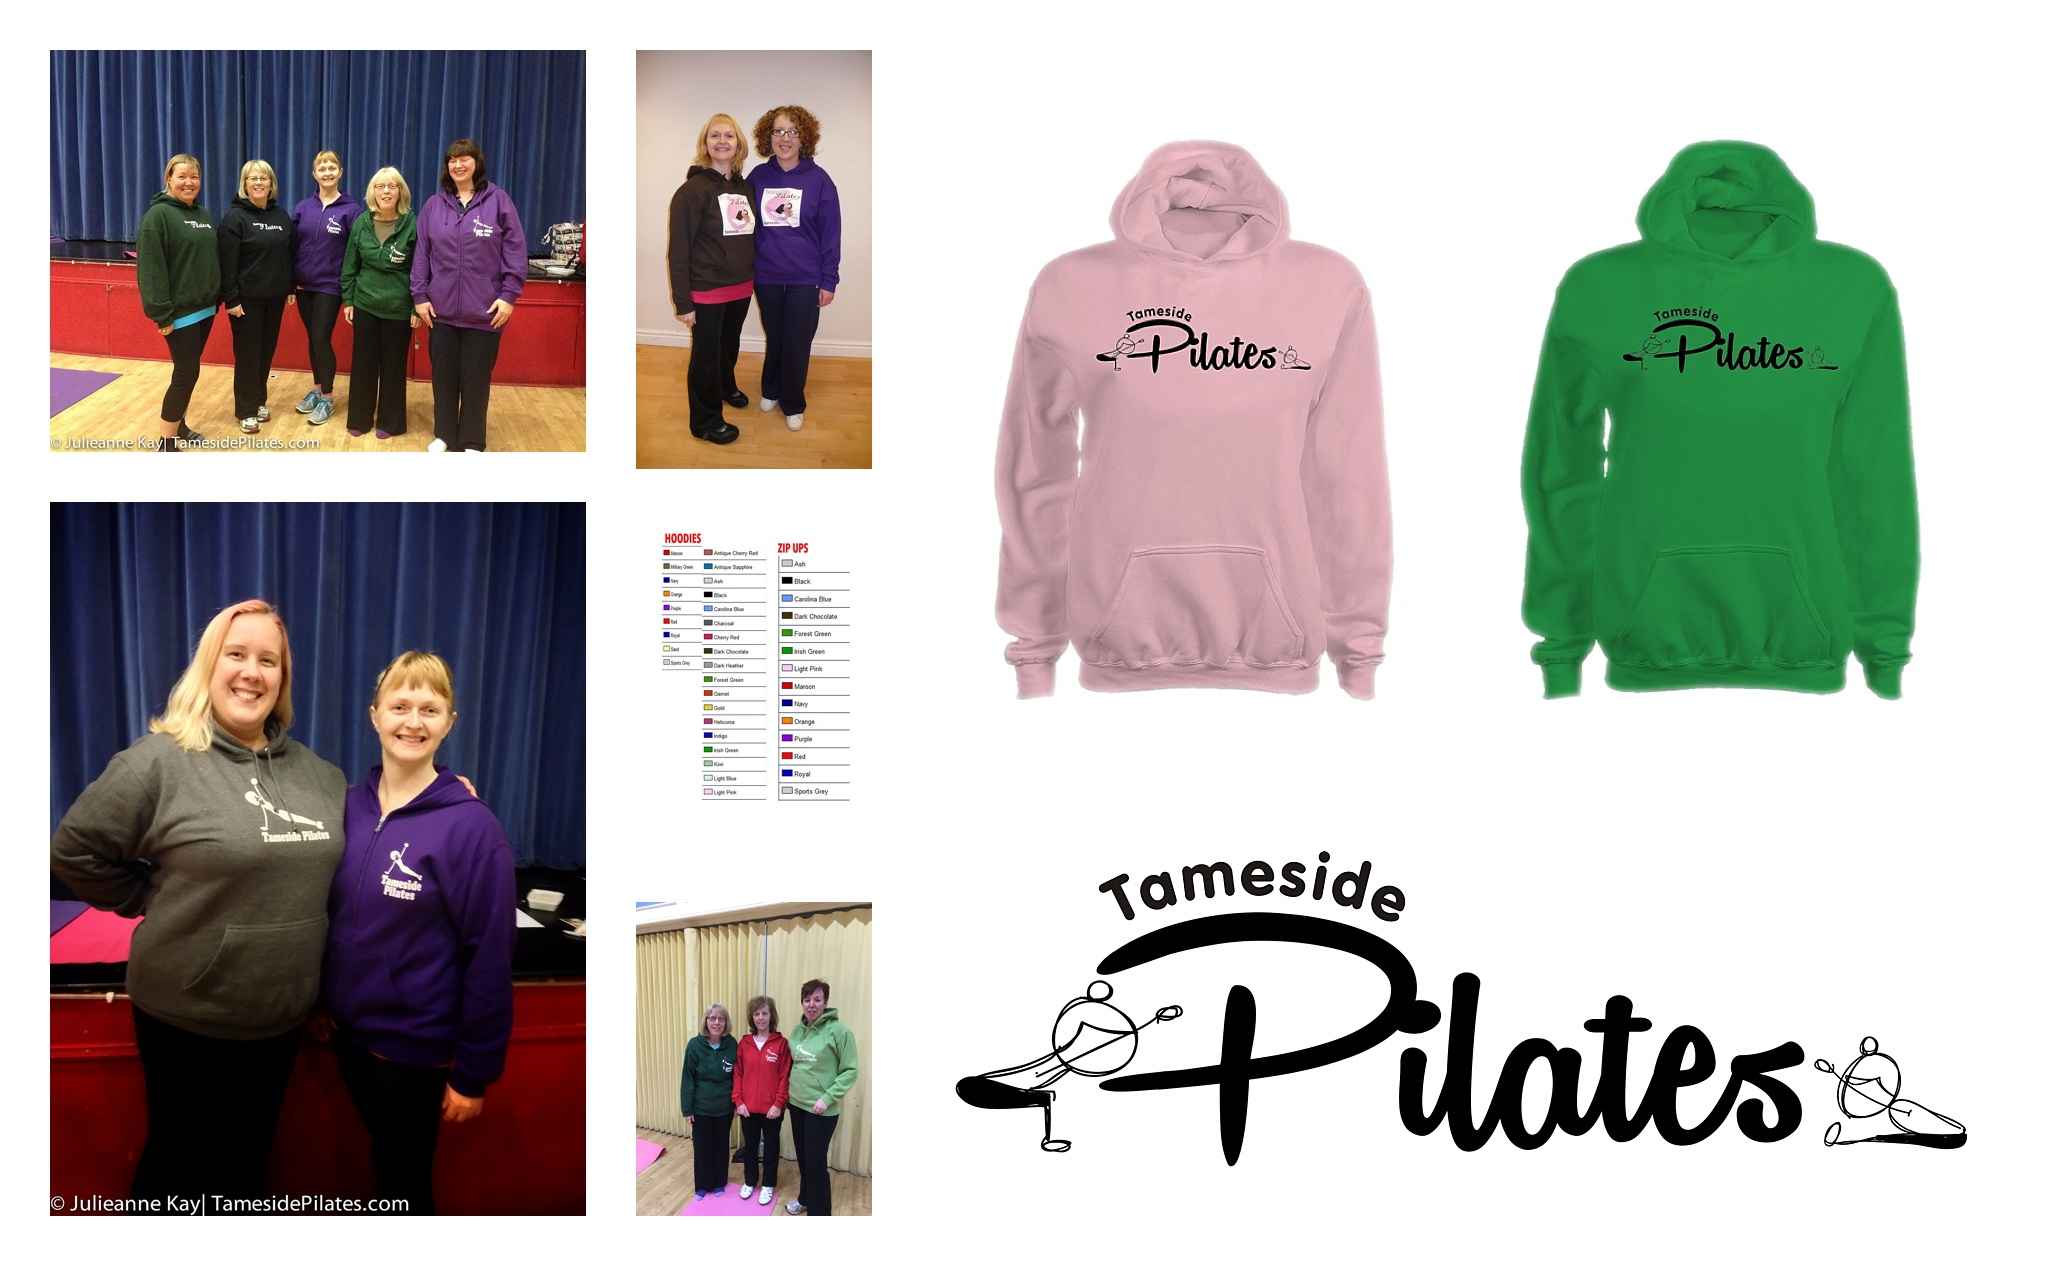 hoodies at Tameside Pilates